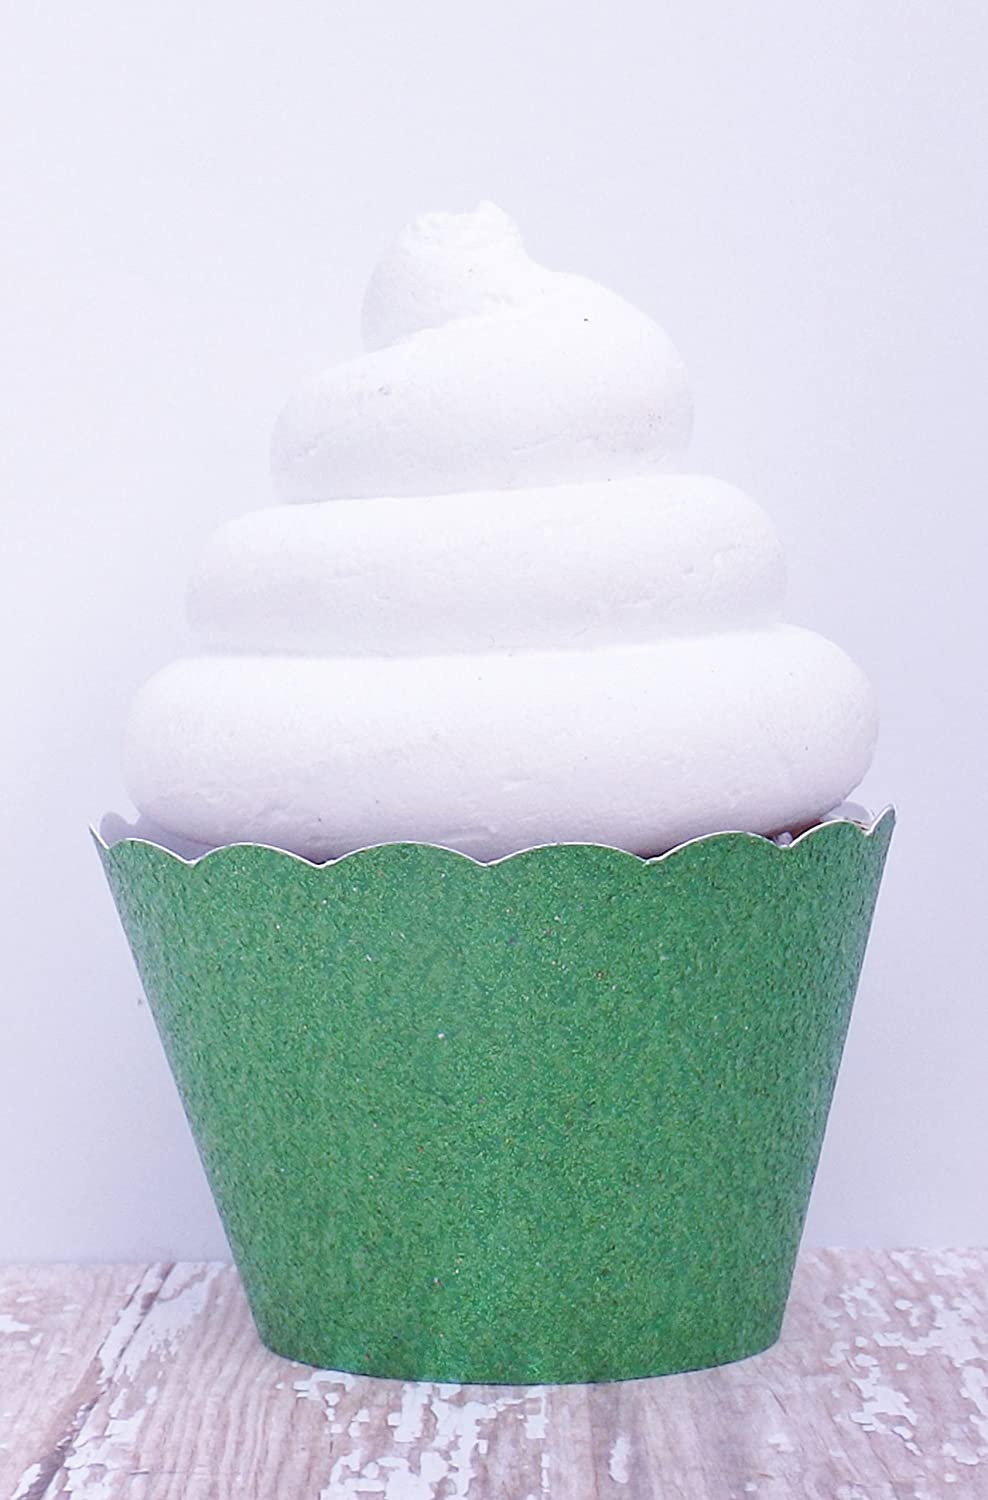 Green Metallic Glitter Cupcake Wrappers - Standard and Mini Sized Holders - Set of 12